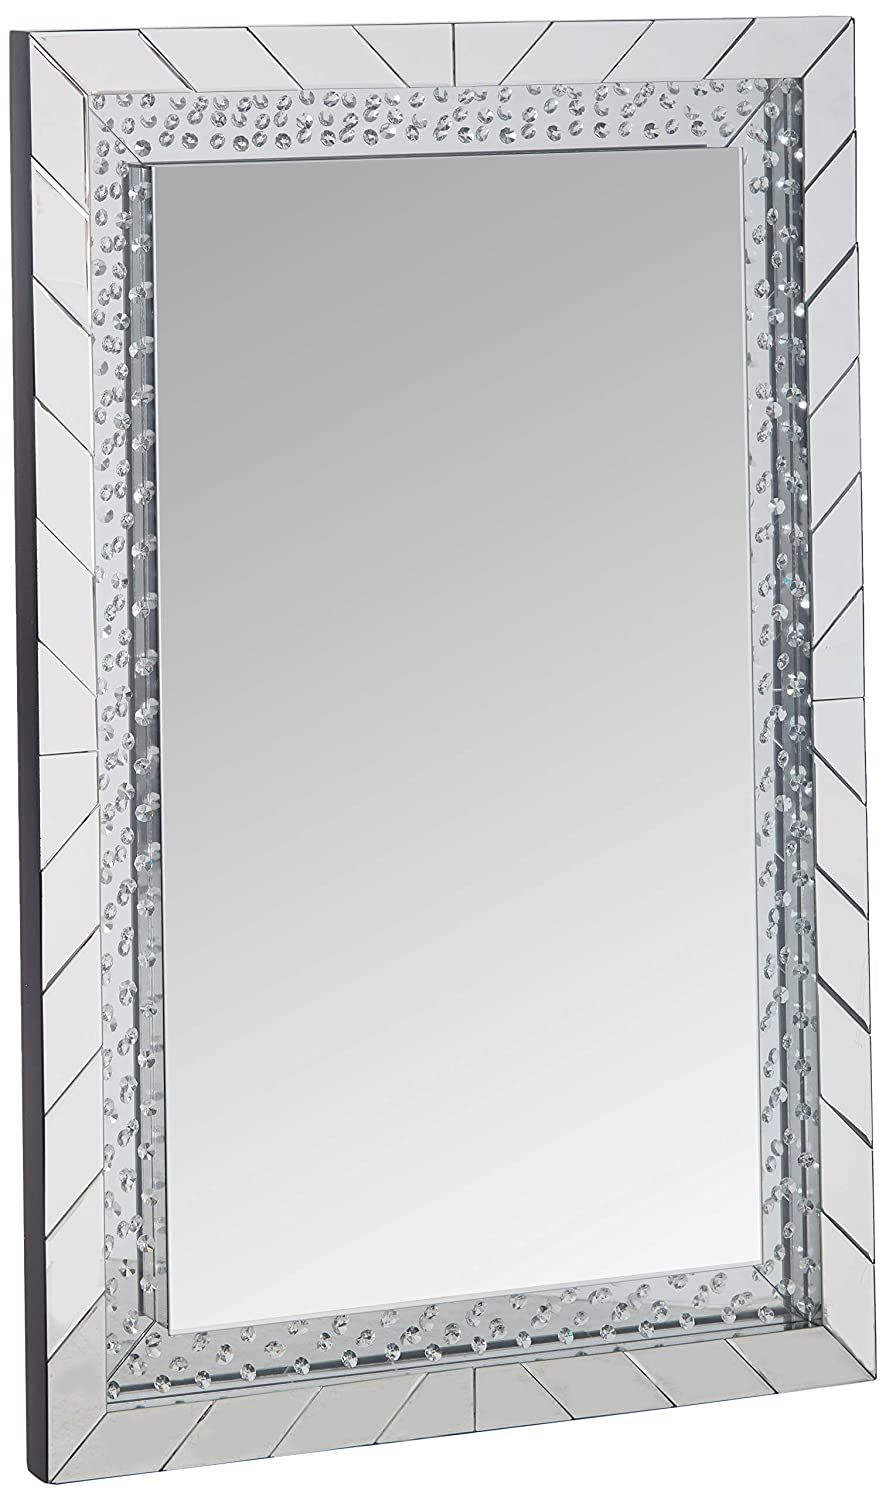 Major-Q 9097386 47 H Modern Style Rectangular Shape Crystal Insert Sophisticated Elegant Beveled Boarder Frame Wall Mirror